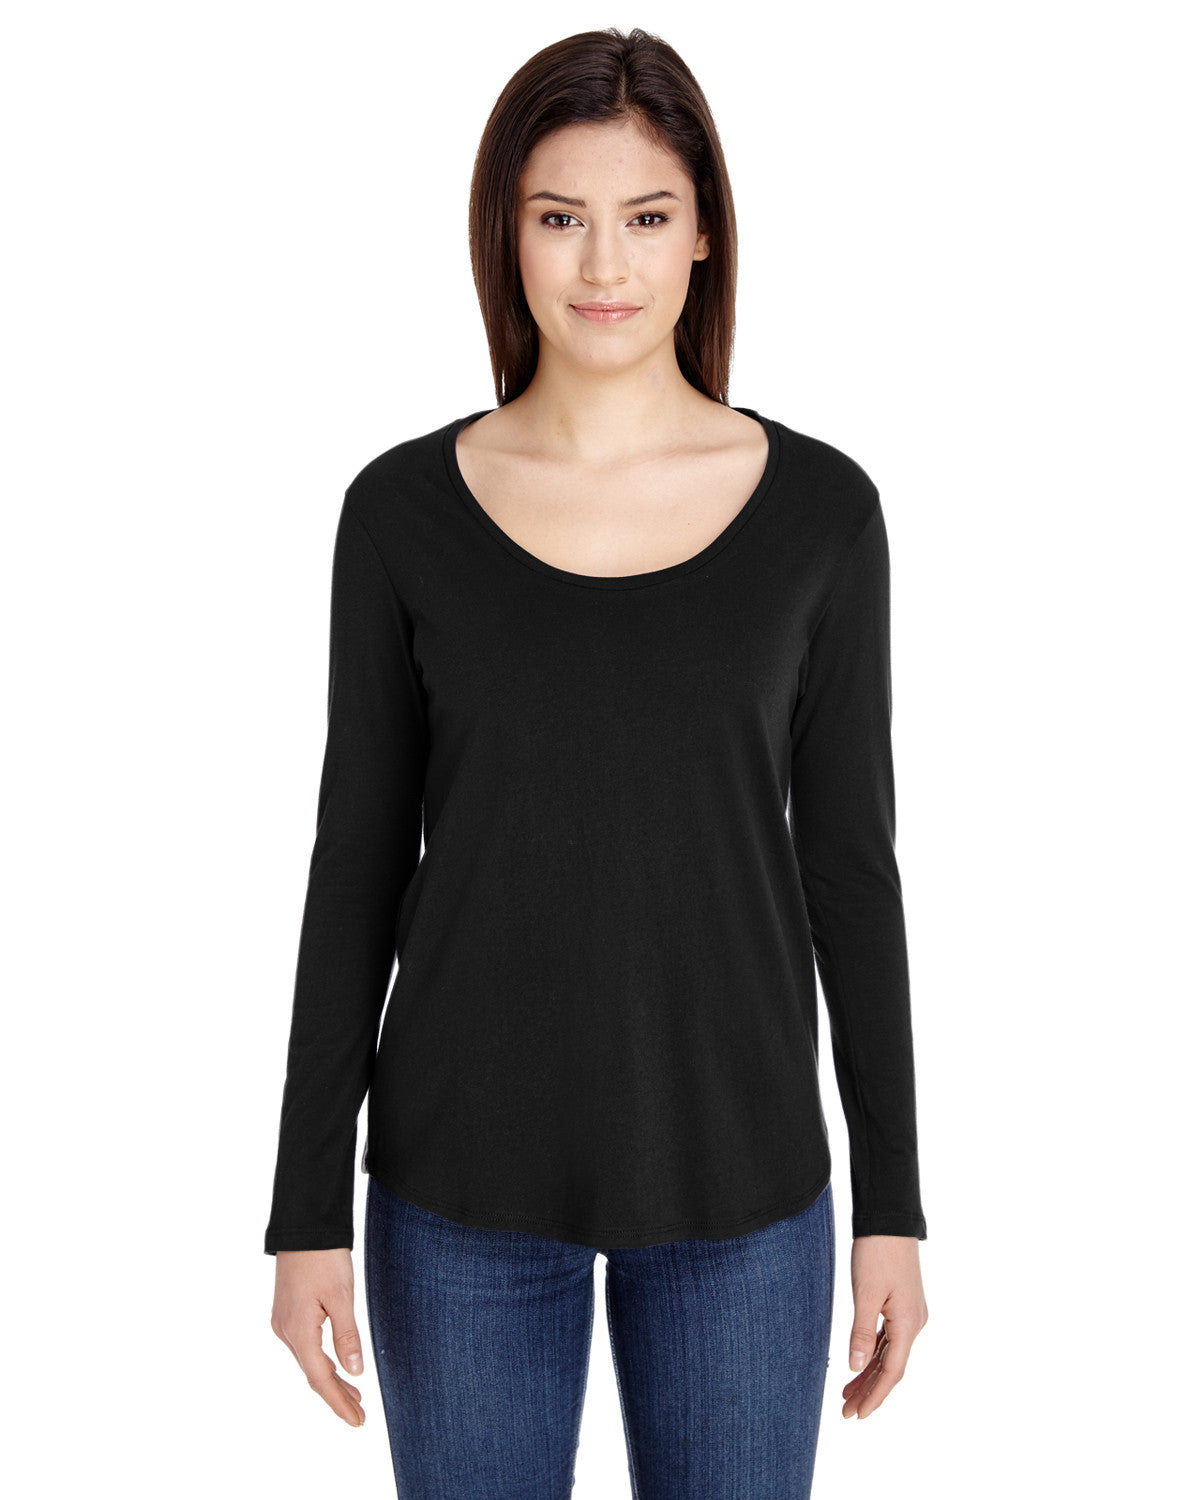 American Apparel Ultra Wash Long Sleeve T-shirt